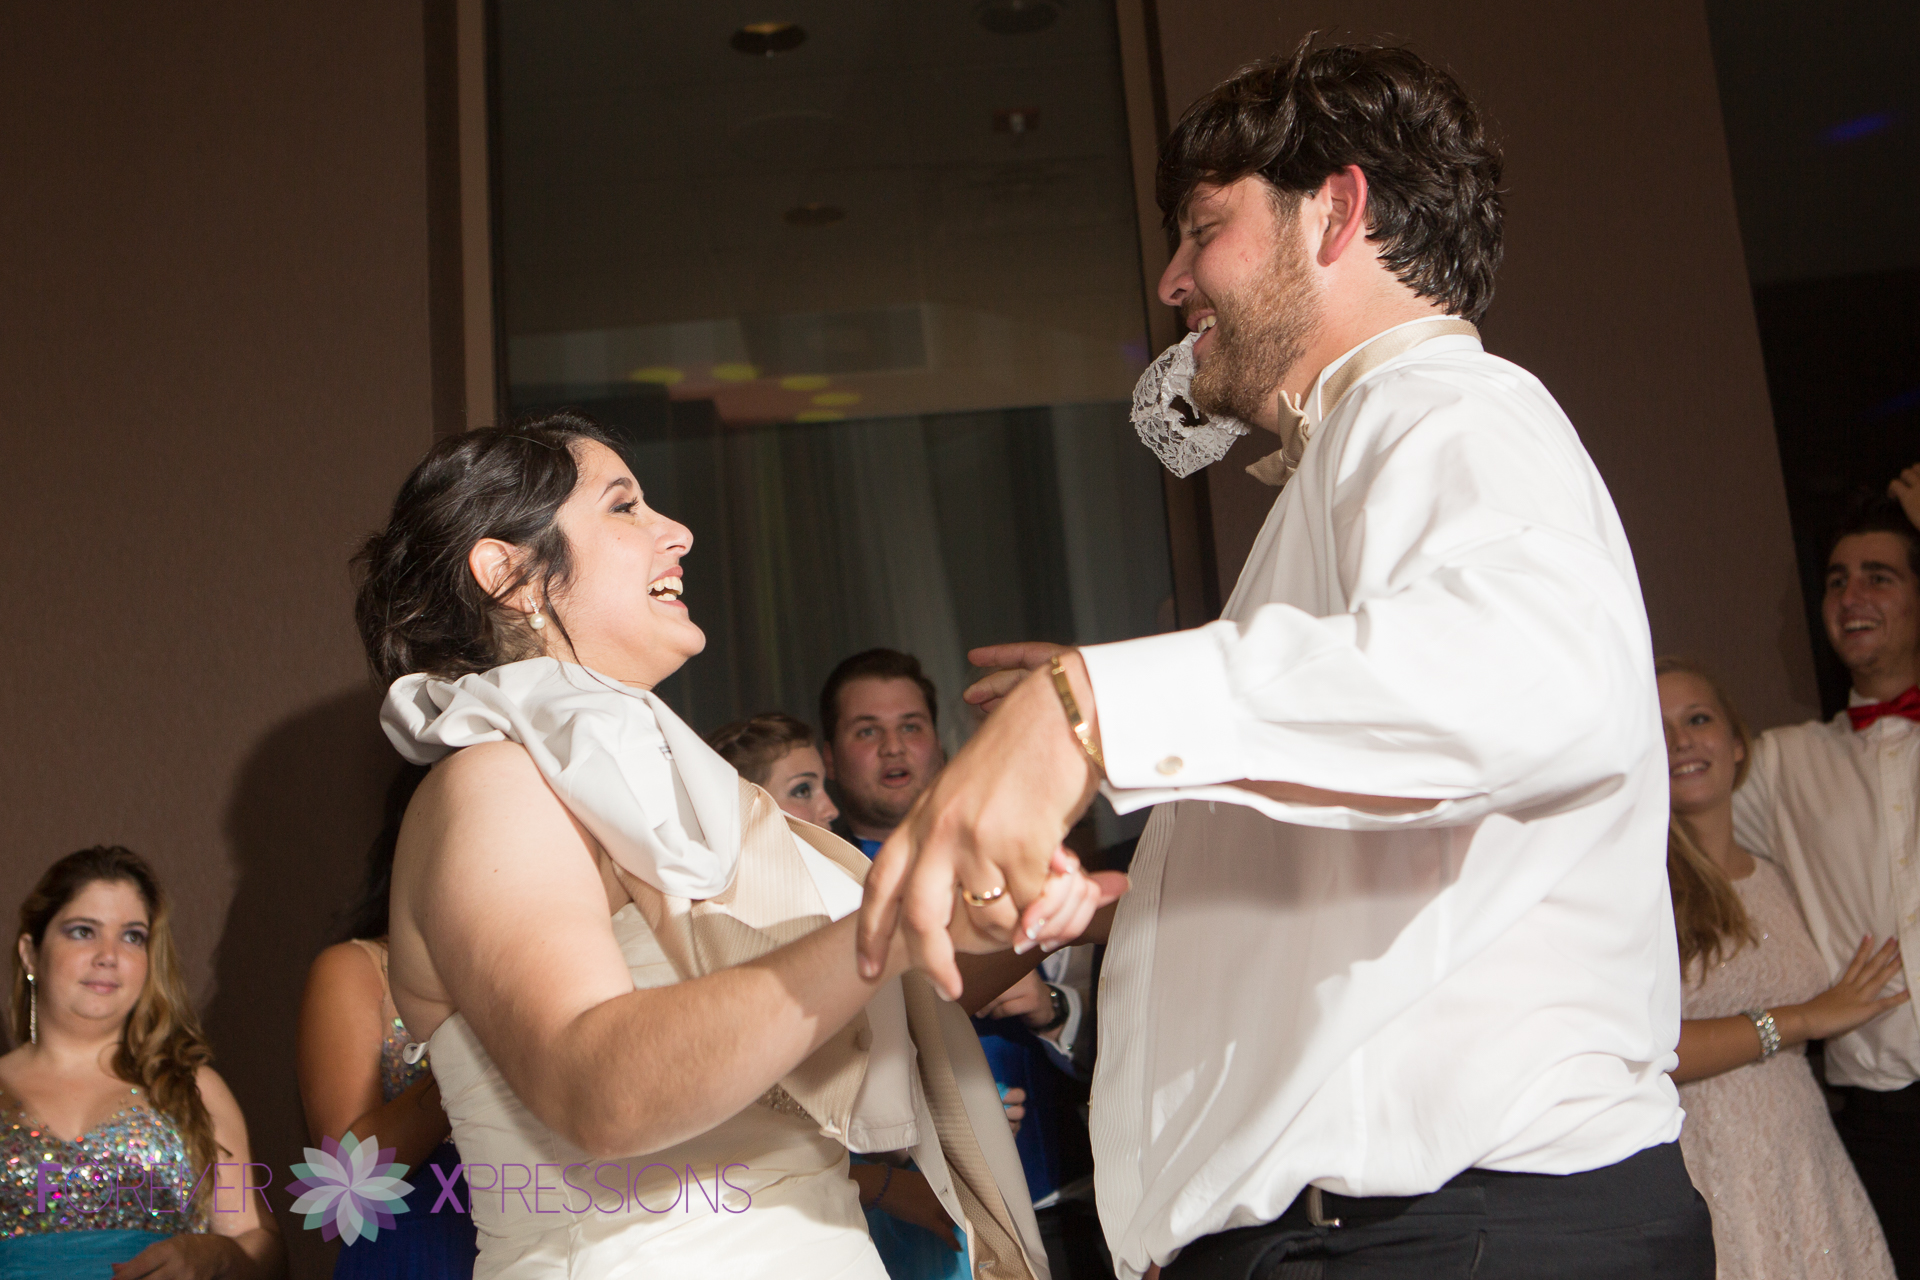 Forever_Xpressions_Wedding_Photography_Monteverde_Bella_Collina-1037